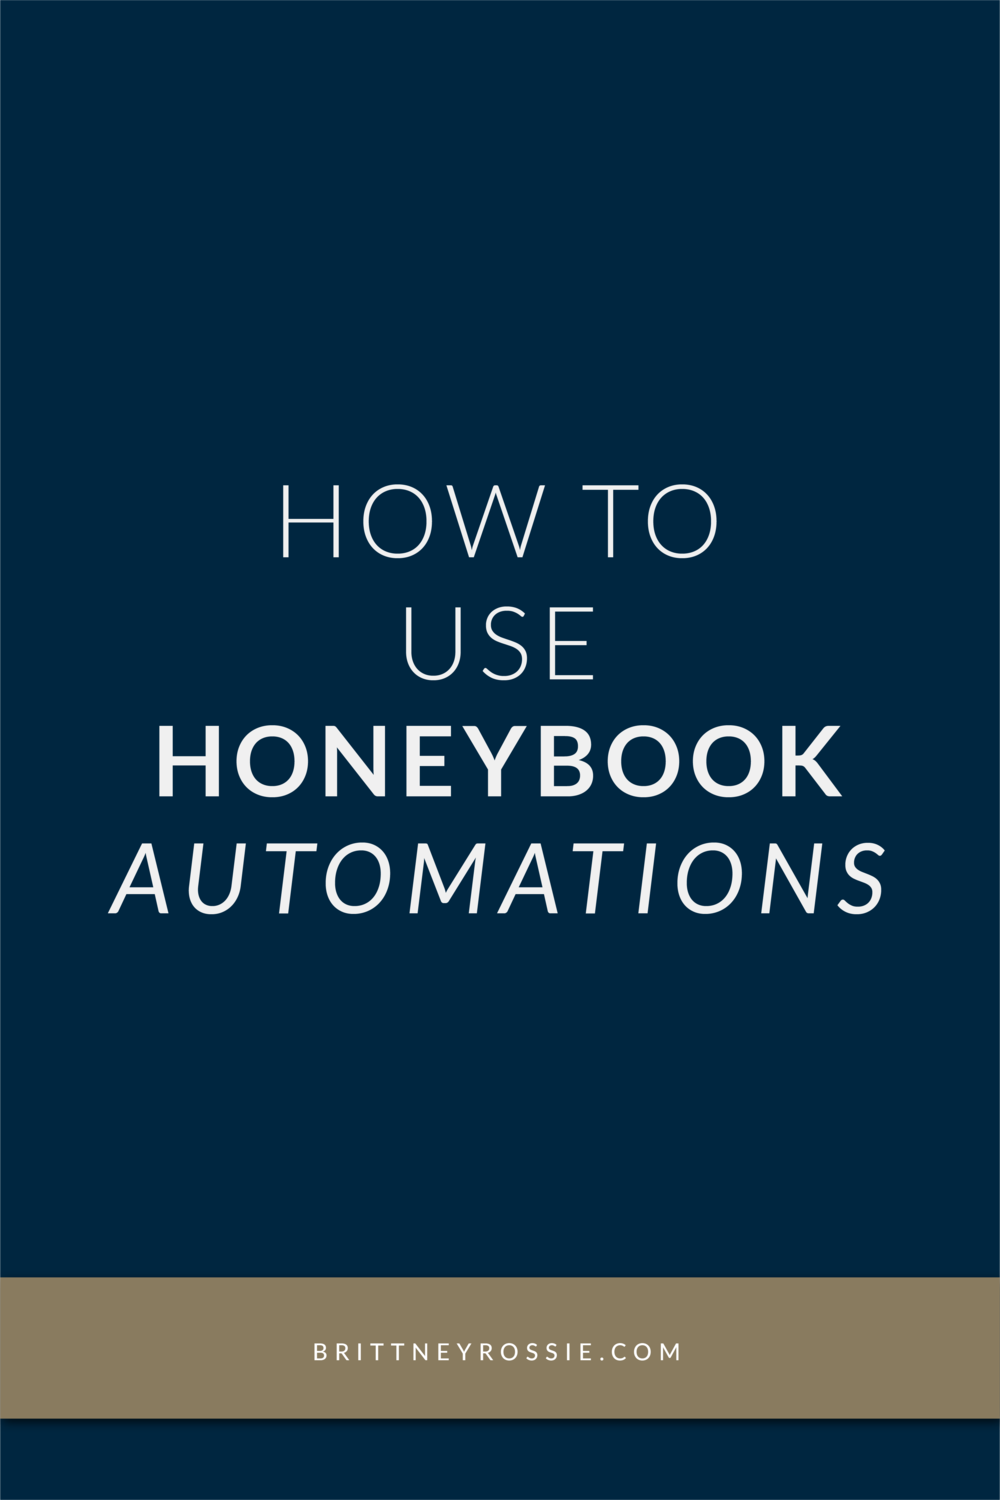 How-to-Use-Honeybook-Automations_BrittneyRossie.com.png